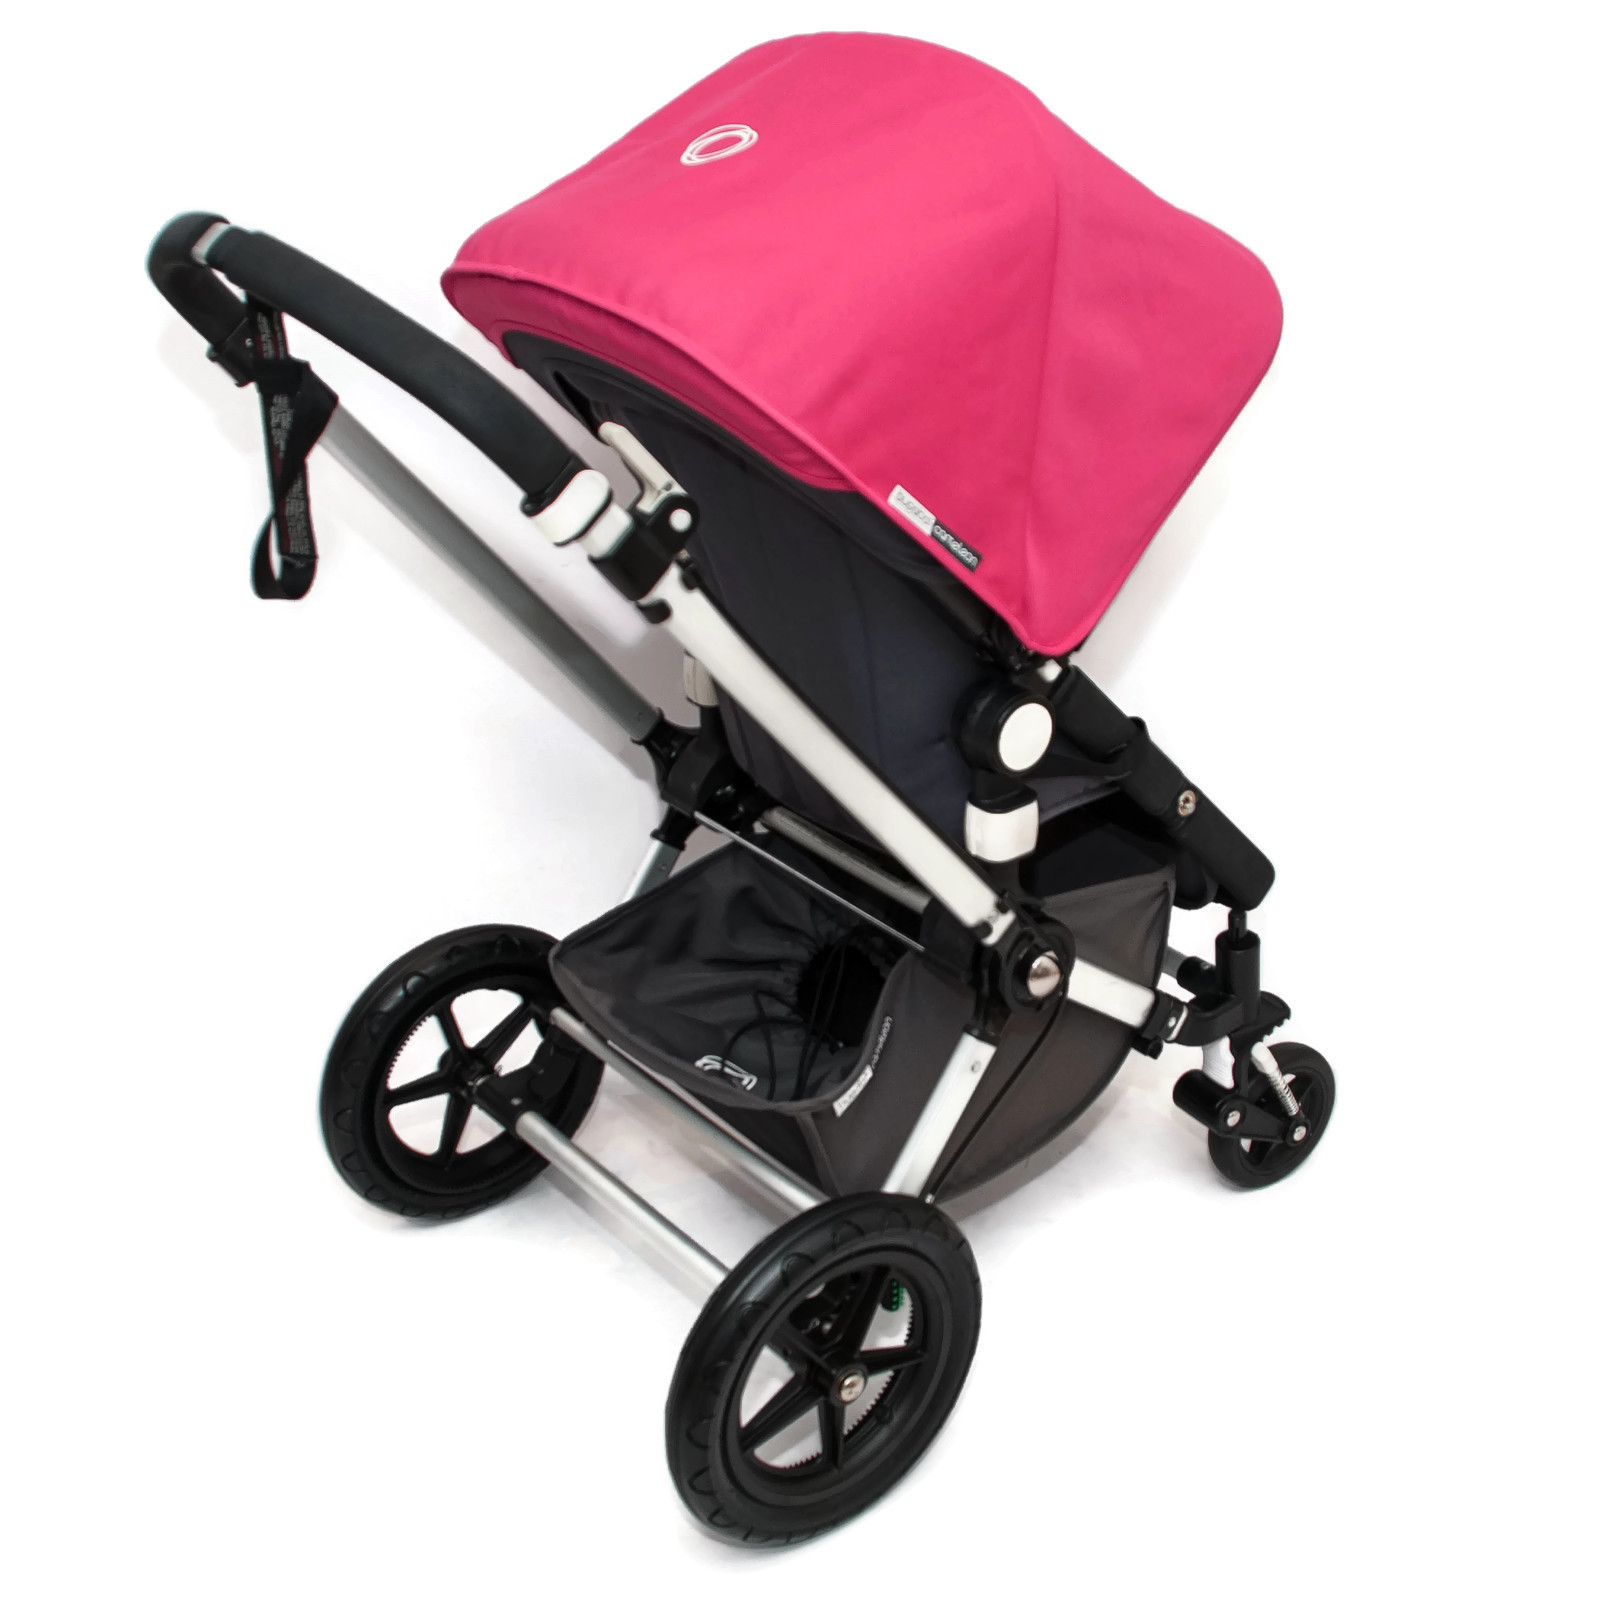 bugaboo cameleon 2 kinderwagen set komplett hot pink rosa grau ebay. Black Bedroom Furniture Sets. Home Design Ideas